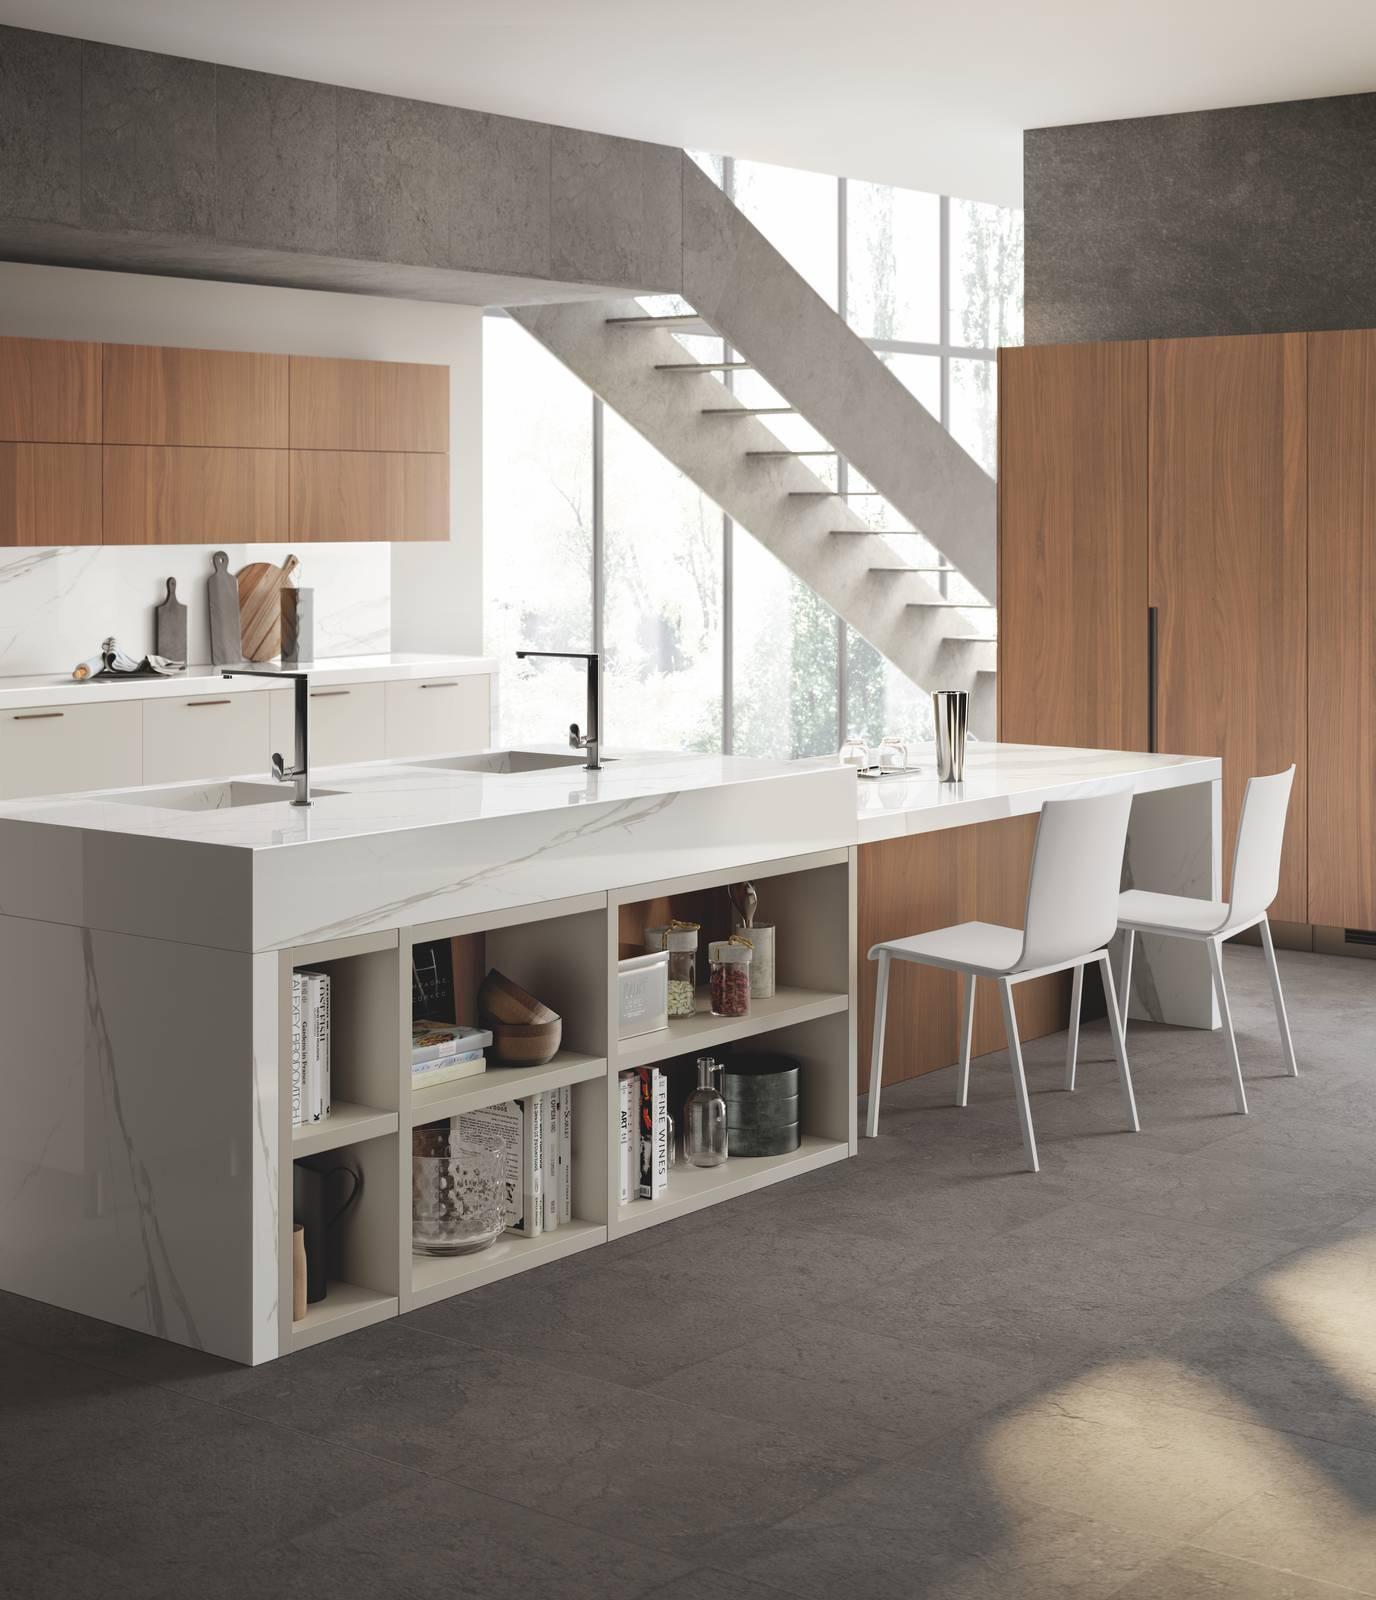 Cucina Scavolini Gres | Delightful Stylish Modern Kitchen Idea ...